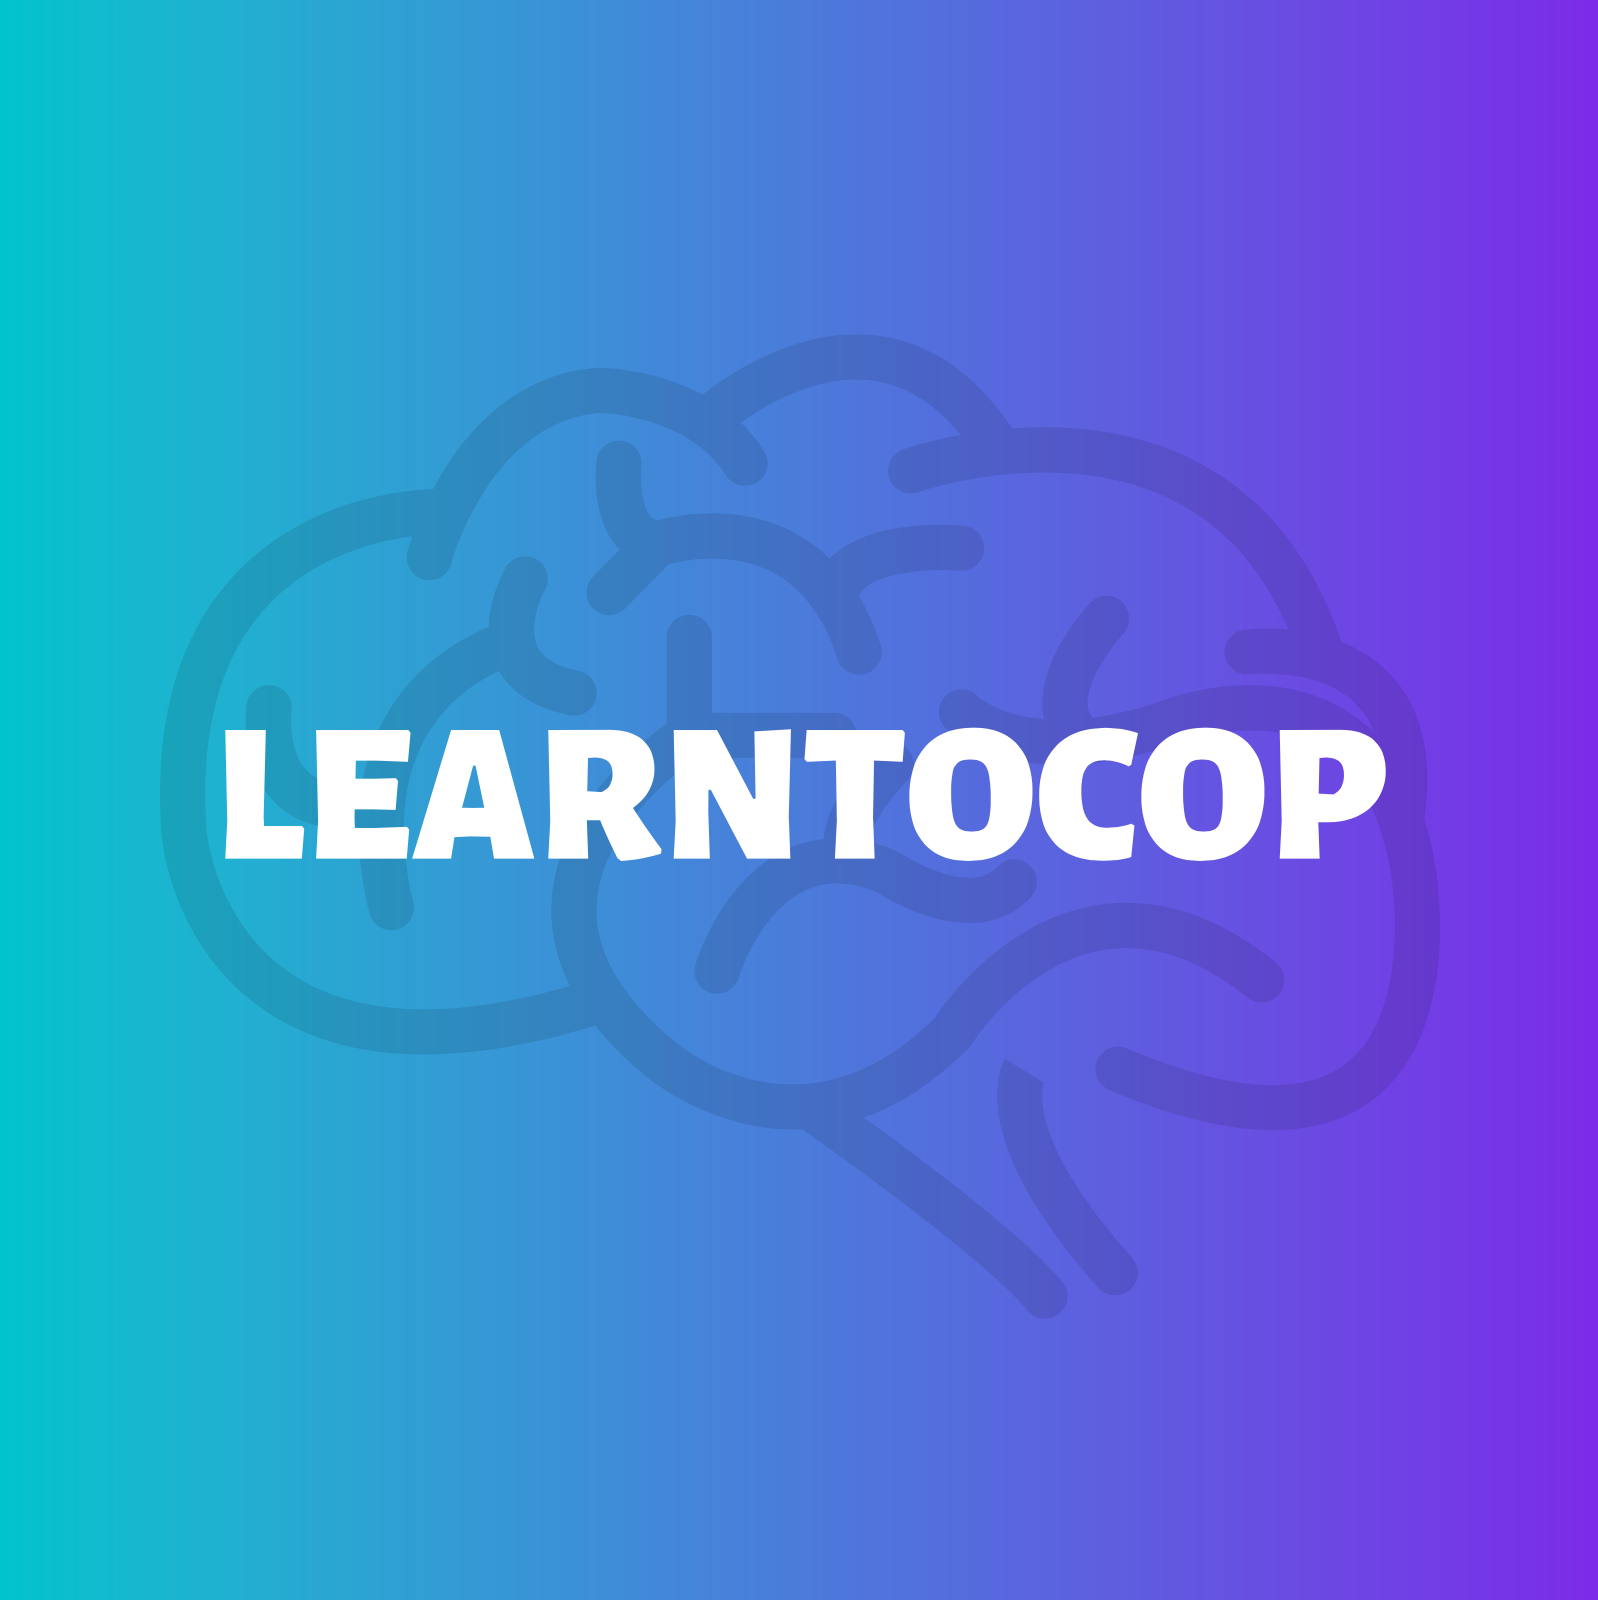 Learntocop